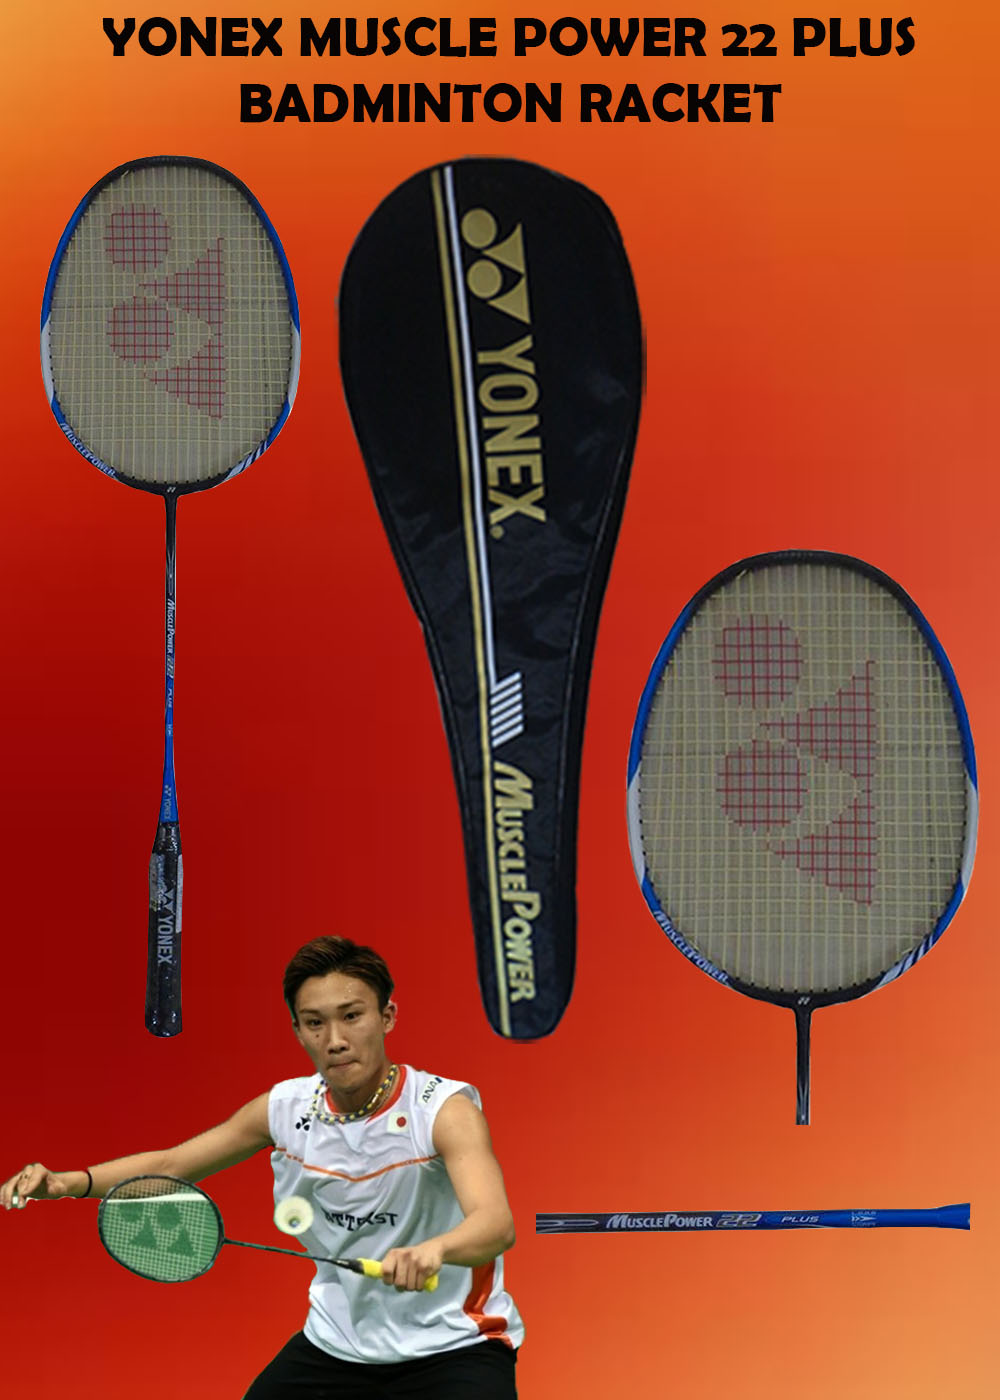 Yonex Muscle Power 22 Plus